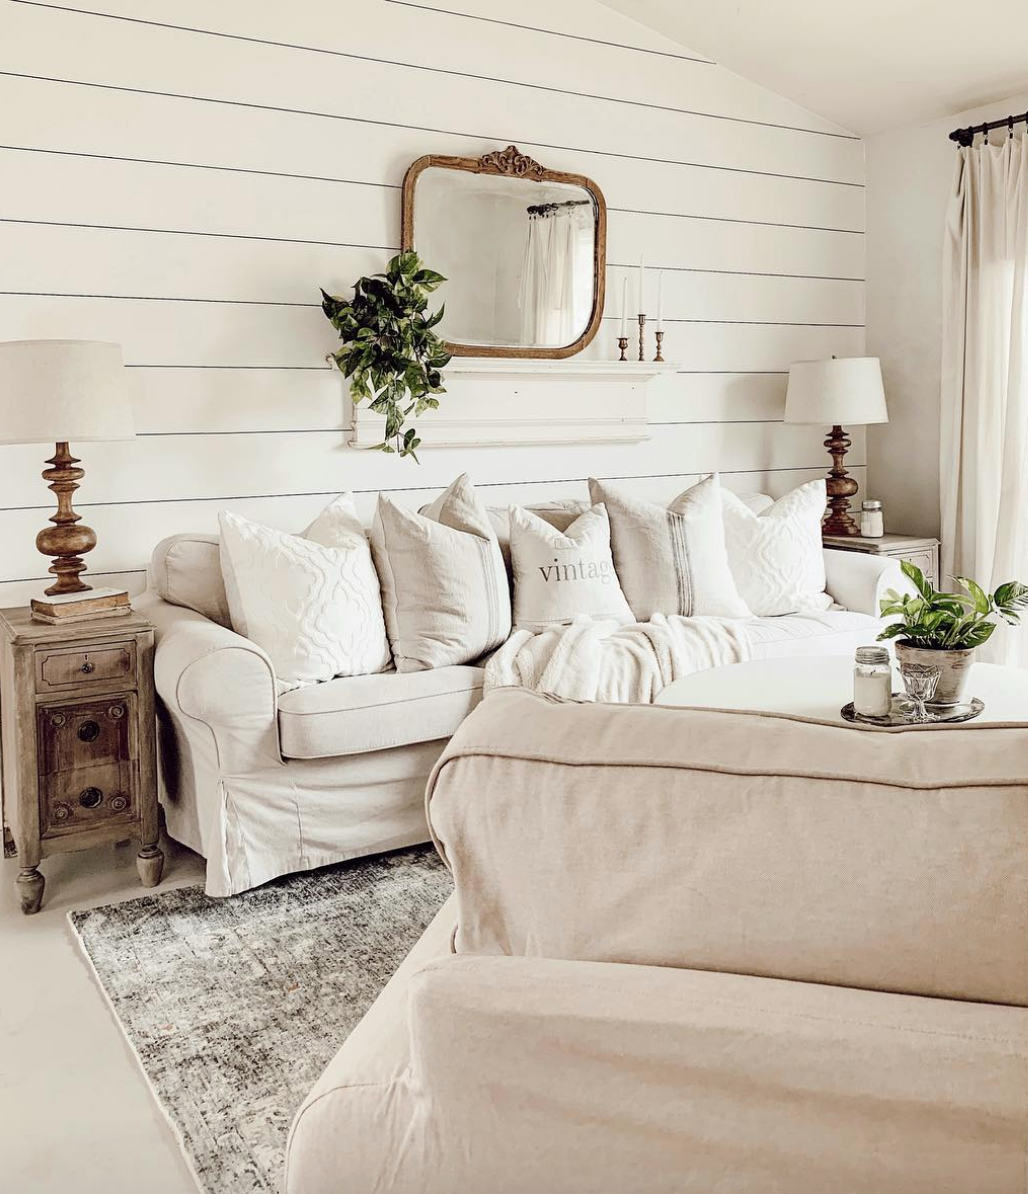 Best Vintage Inspired Living Room Decor With Farmhouse Neutrals White Shiplap And Antique C 400 x 300